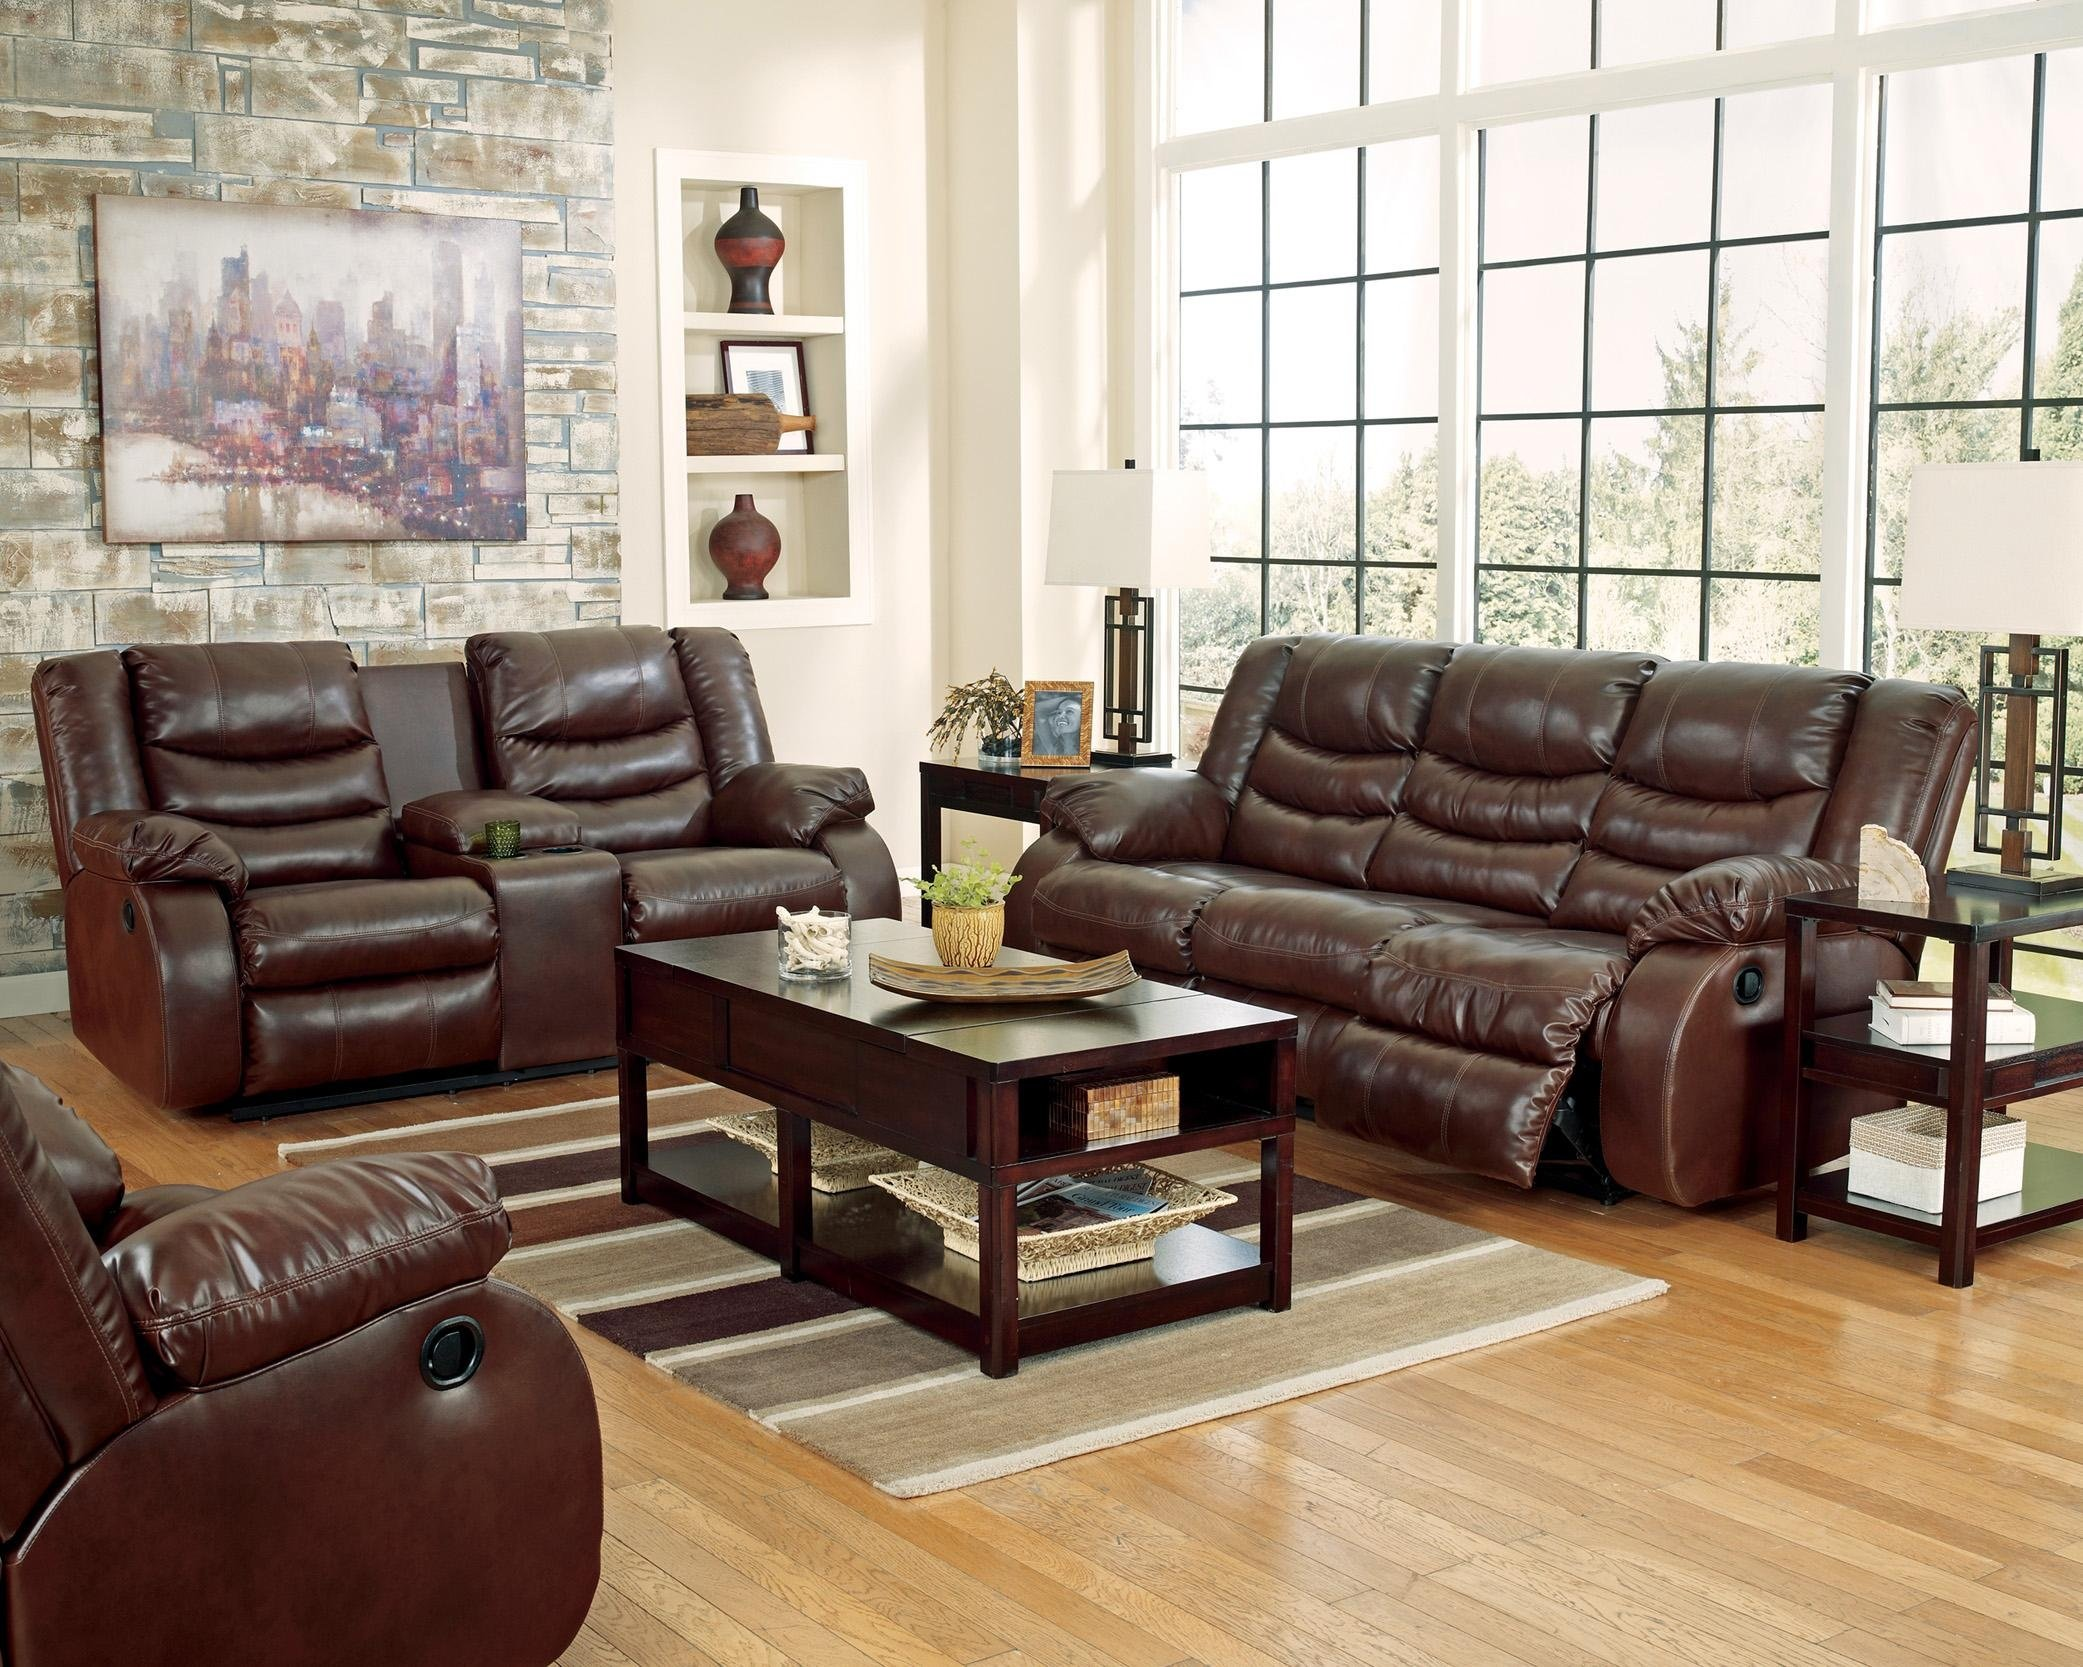 952-01 Linebacker Sofa & Loveseat Set (Also available in Black)